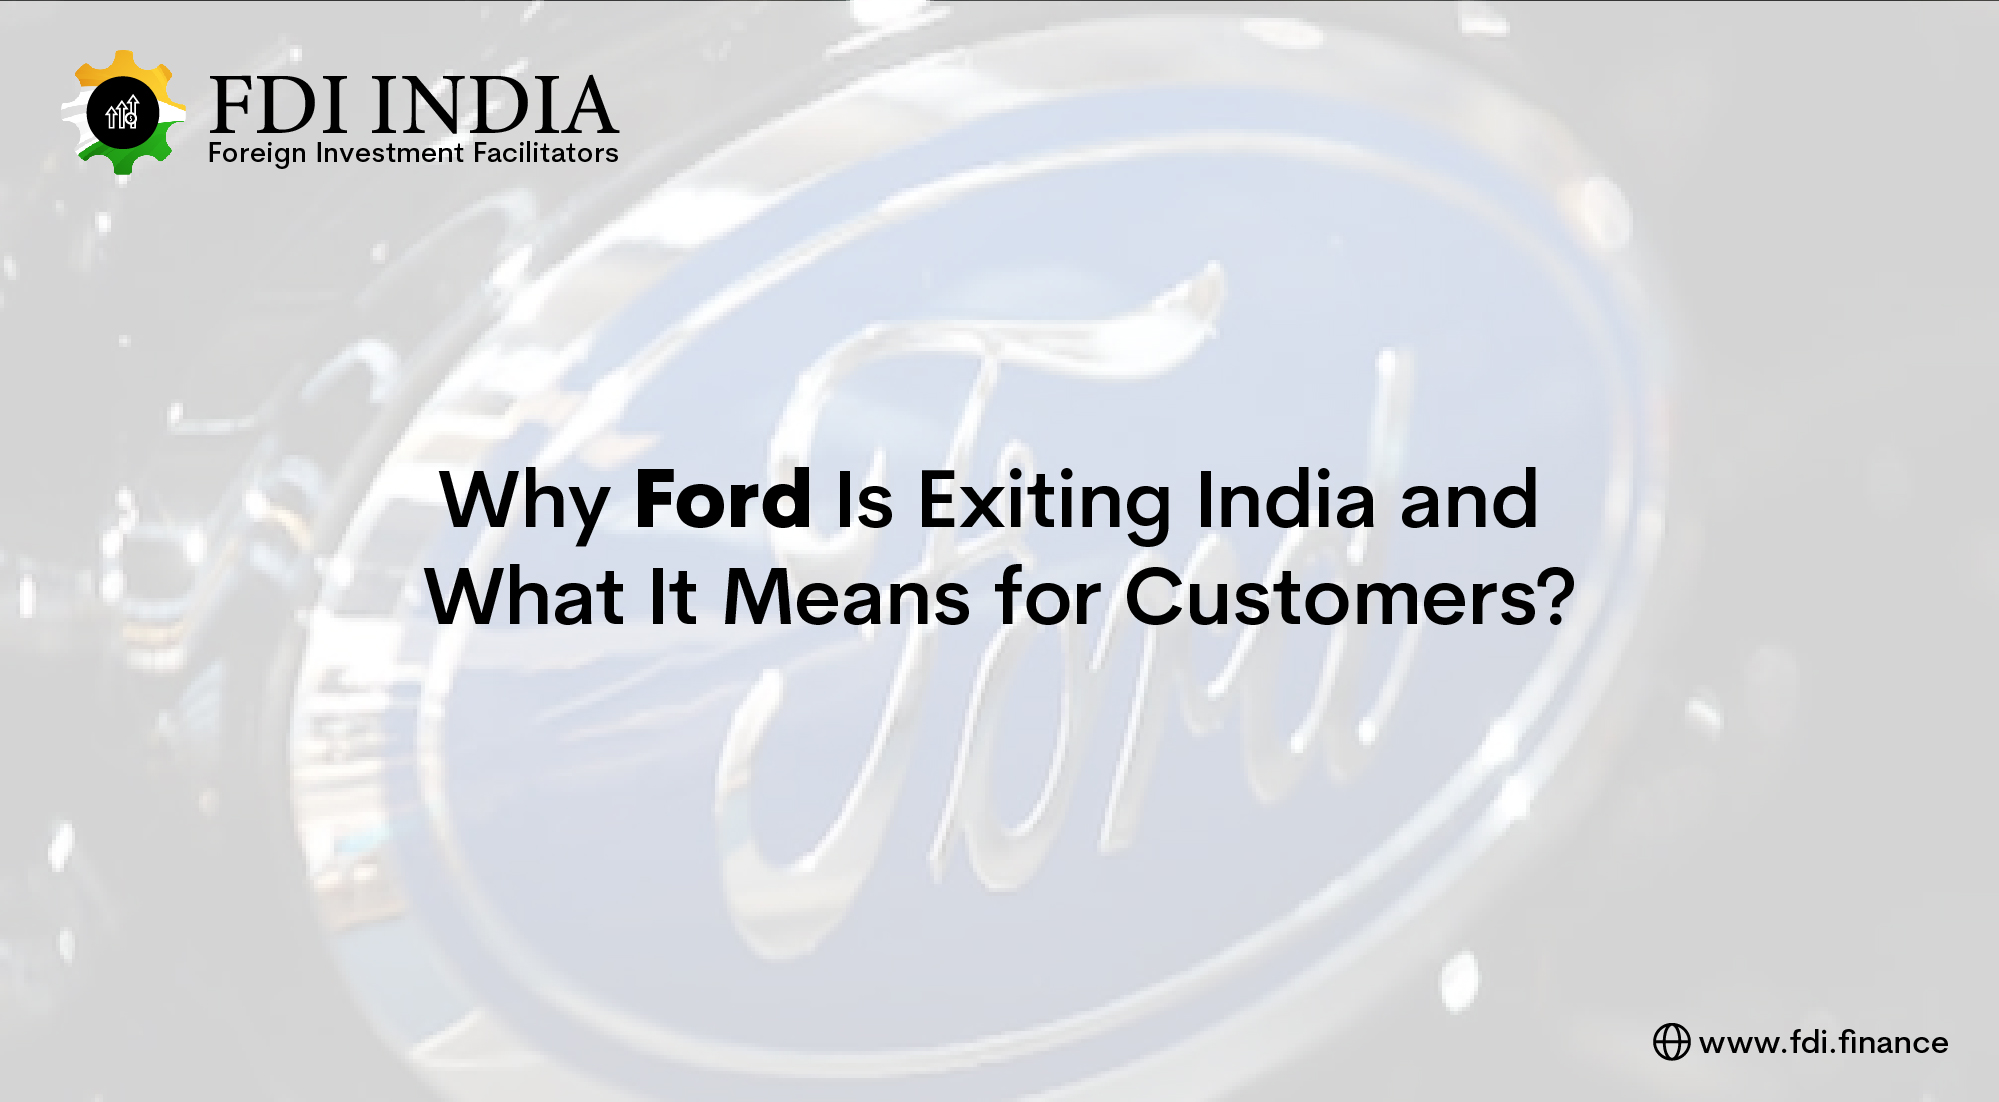 Why Ford Is Exiting India and What It Means for Customers?